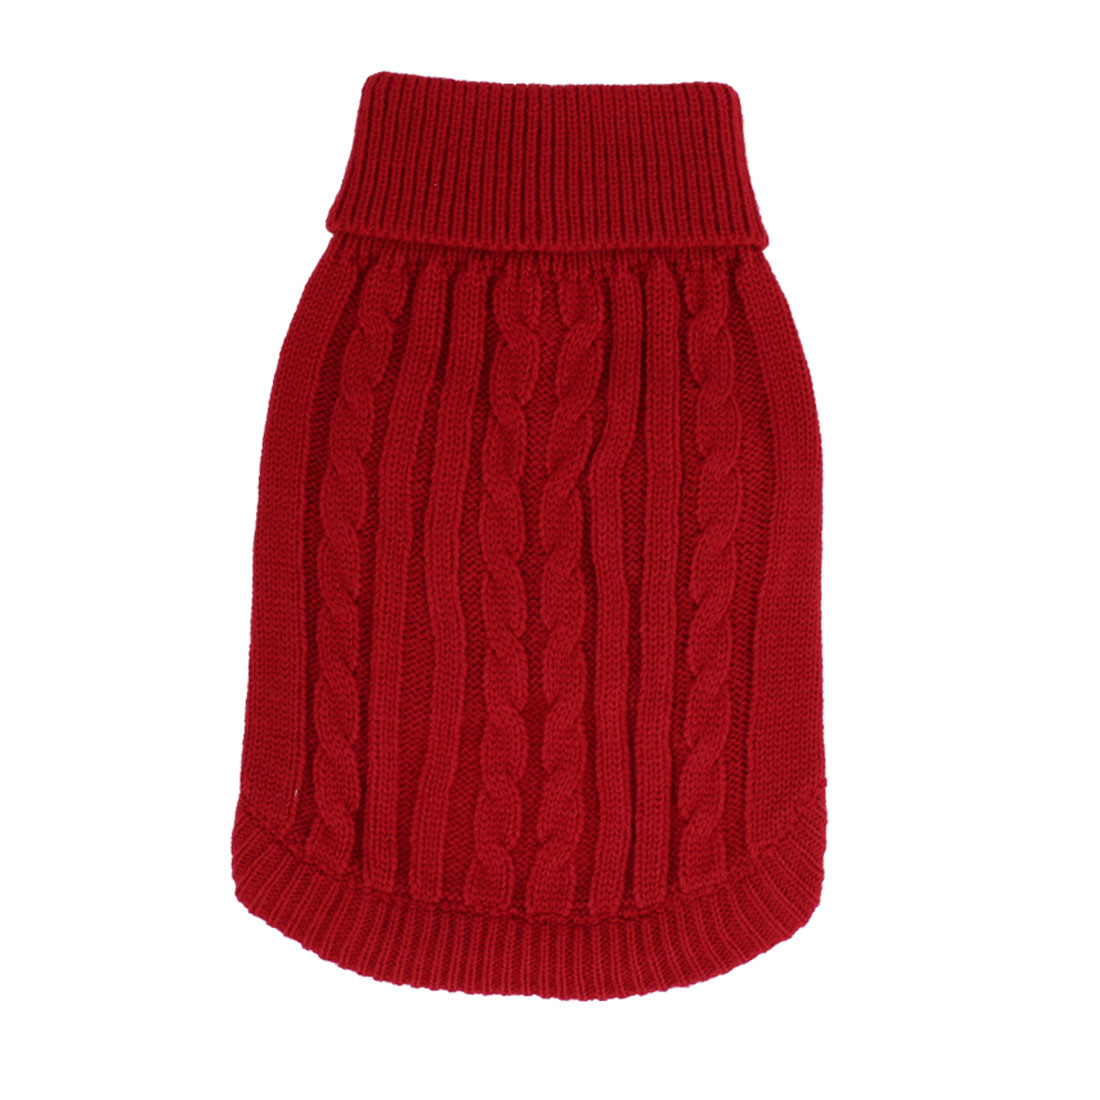 Pet Dog Doggy Ribbed Cuff Twisted Knitwear Turtleneck Apparel Sweater Red Size M